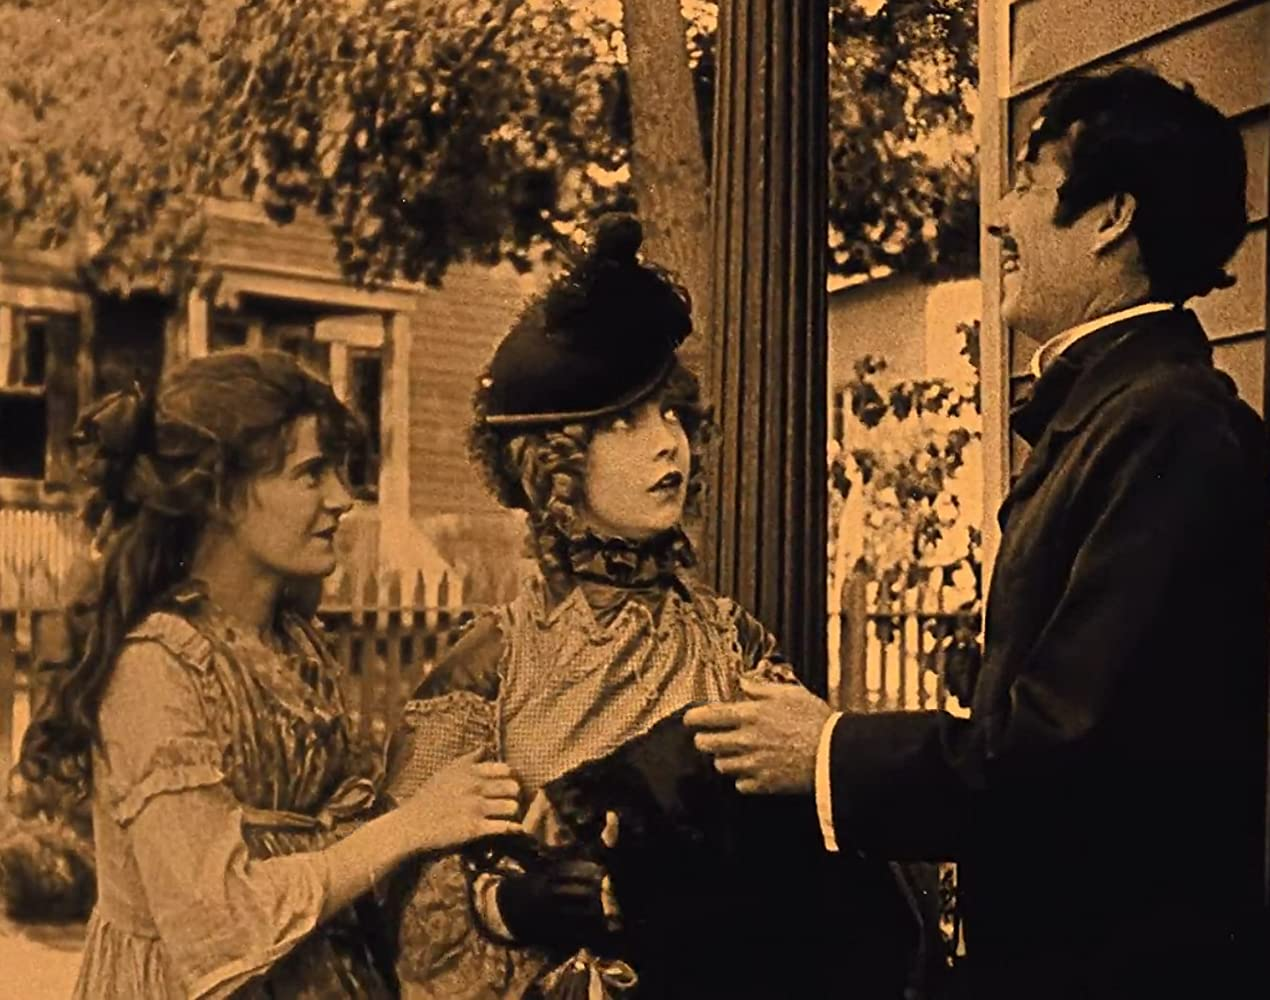 Lillian Gish, Mae Marsh, and Henry B. Walthall in The Birth of a Nation (1915)